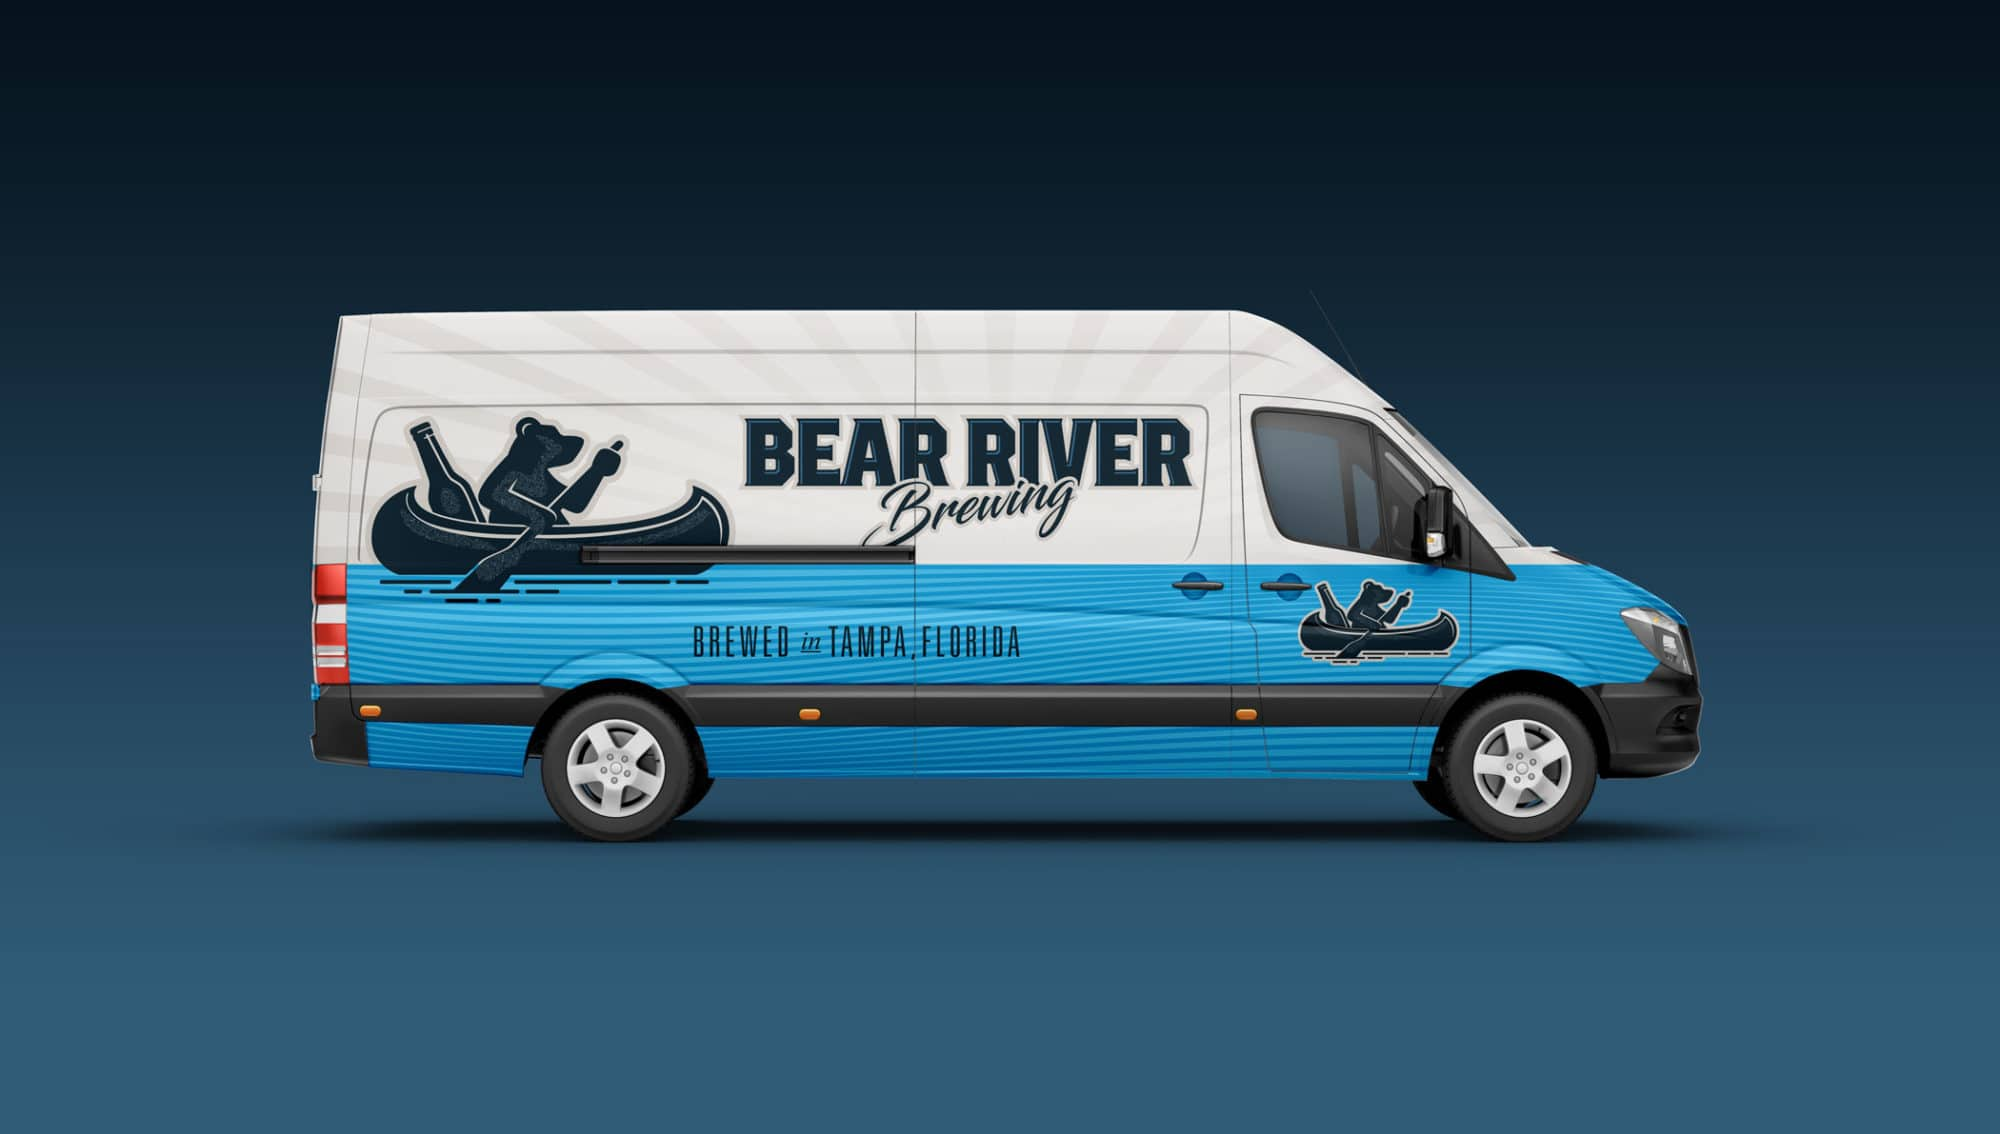 Bear River Brewing Van Wrap Design